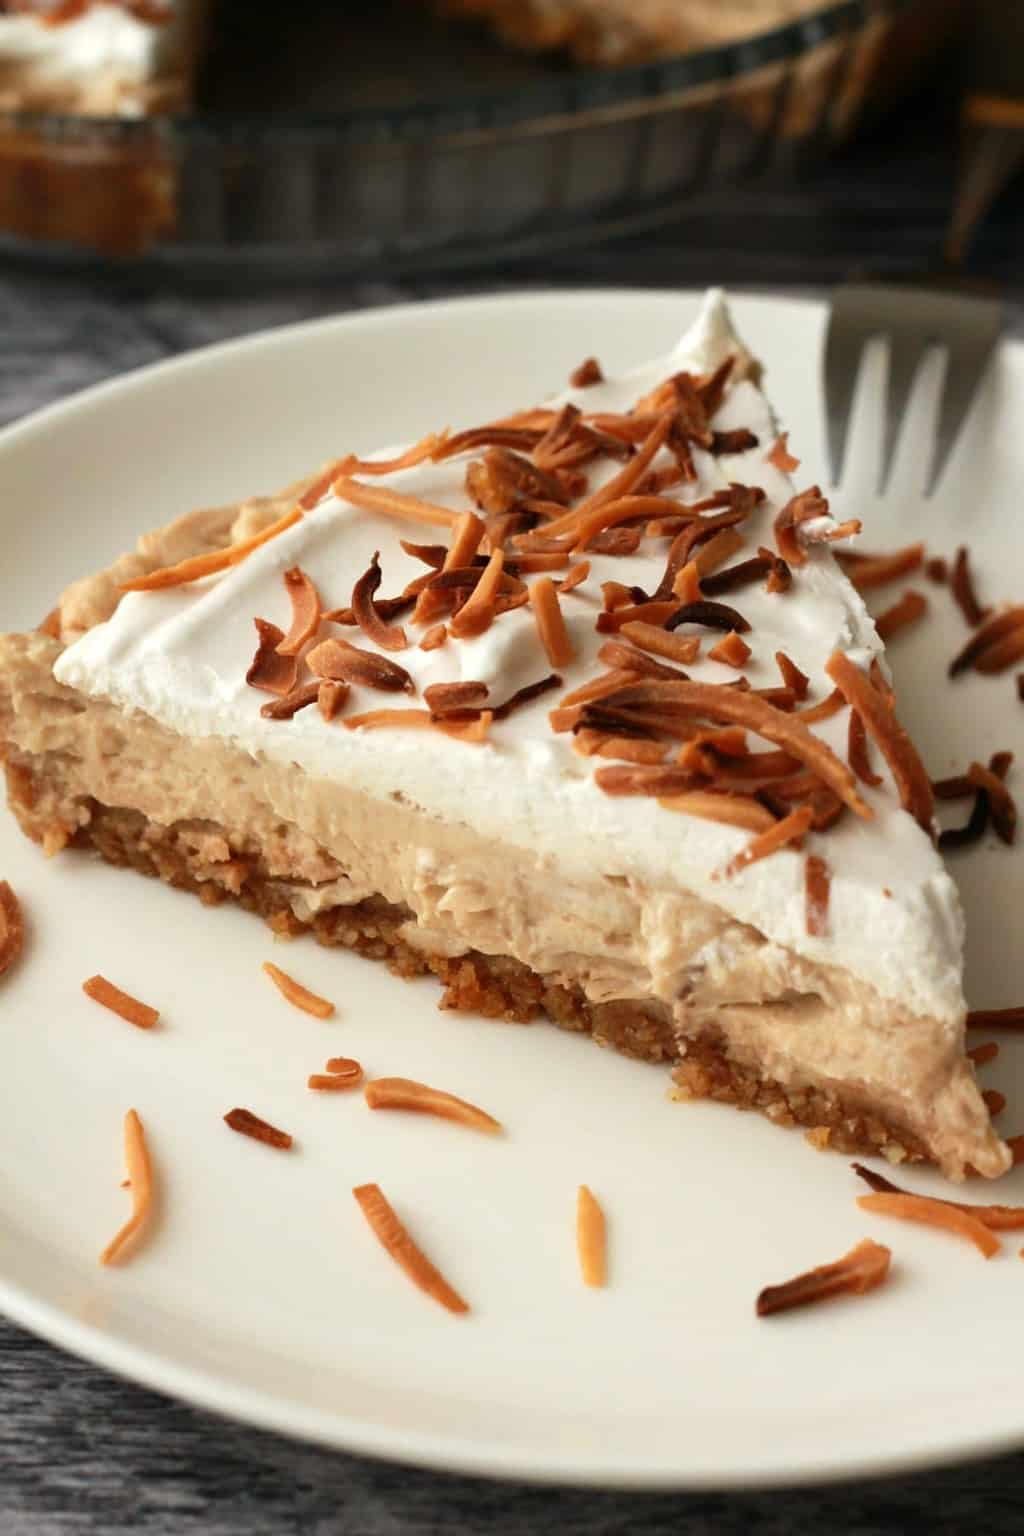 Vegan Coconut Cream Pie. 3-layers of deliciousness topped with toasted coconut flakes! Vegan and gluten-free! #vegan #lovingitvegan #dessert #pie #glutenfree #dairyfree